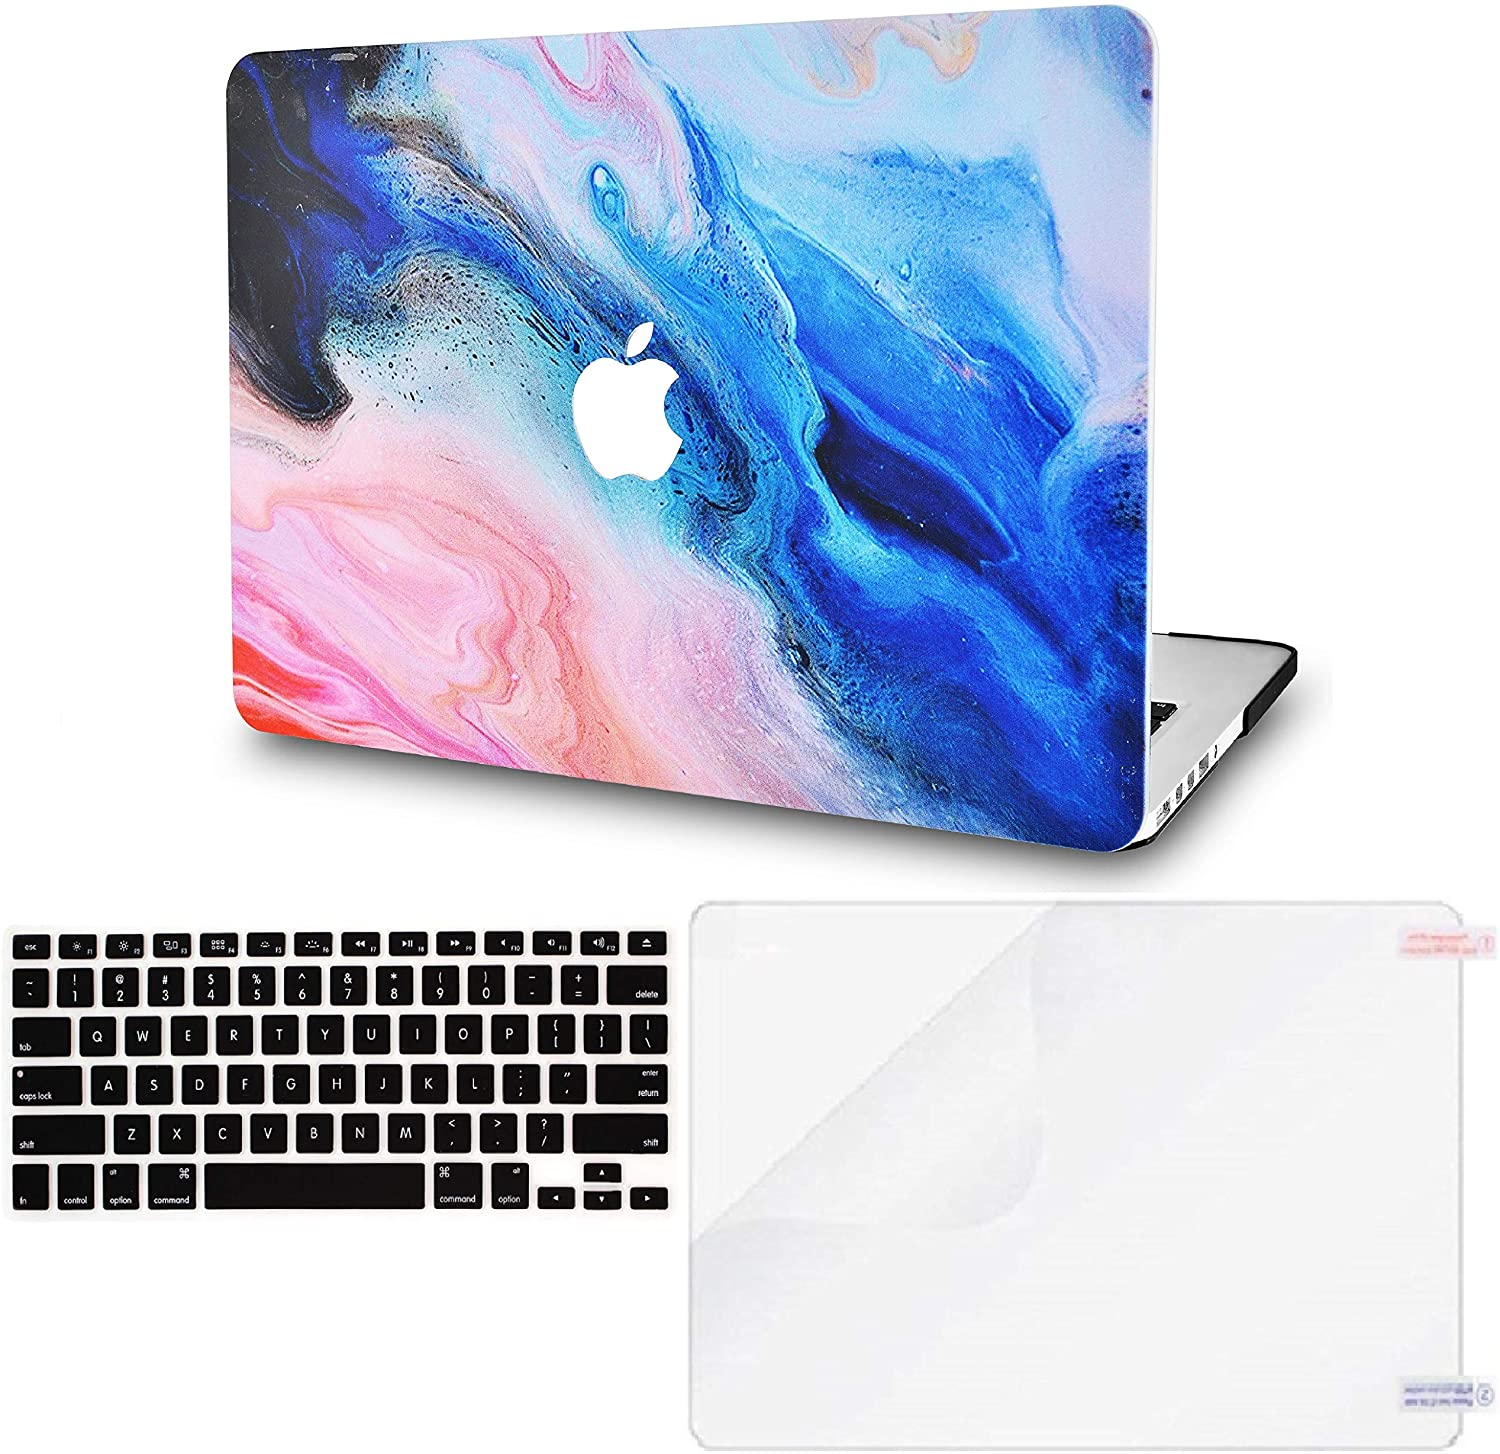 LuvCase 3 in 1 LaptopCase forMacBookPro 15 Touch Bar (2019/2018/2017/2016) A1990/A1707 HardShellCover, Keyboard Cover & Screen Protector(Oil Paint 4)